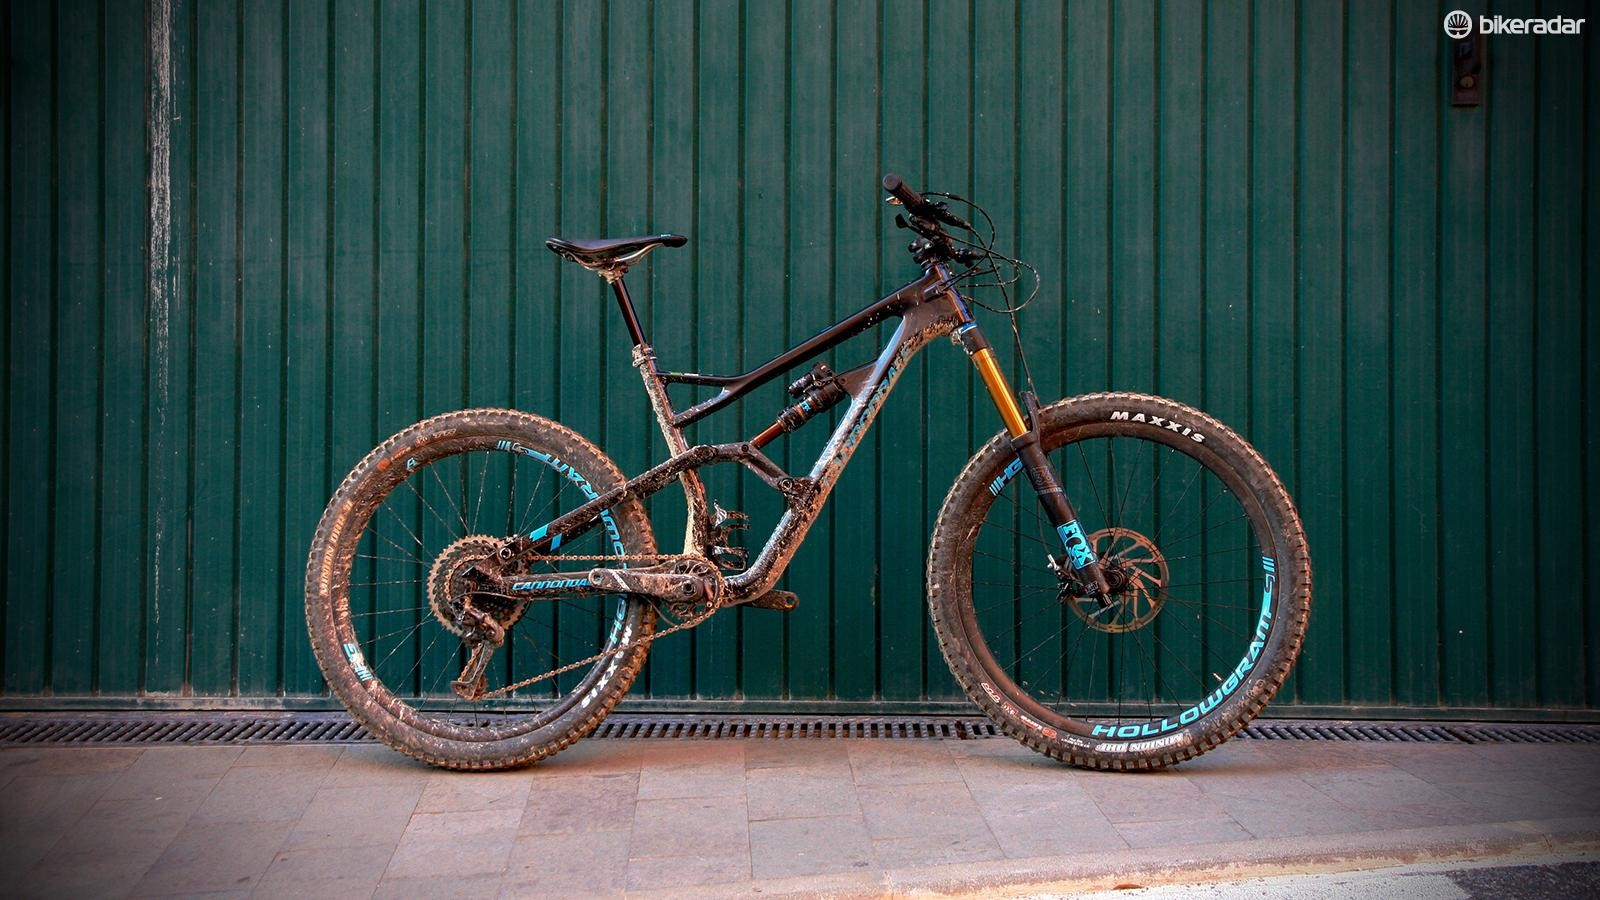 The Jekyll 1 is a top-end enduro bike — sorry about the mud!